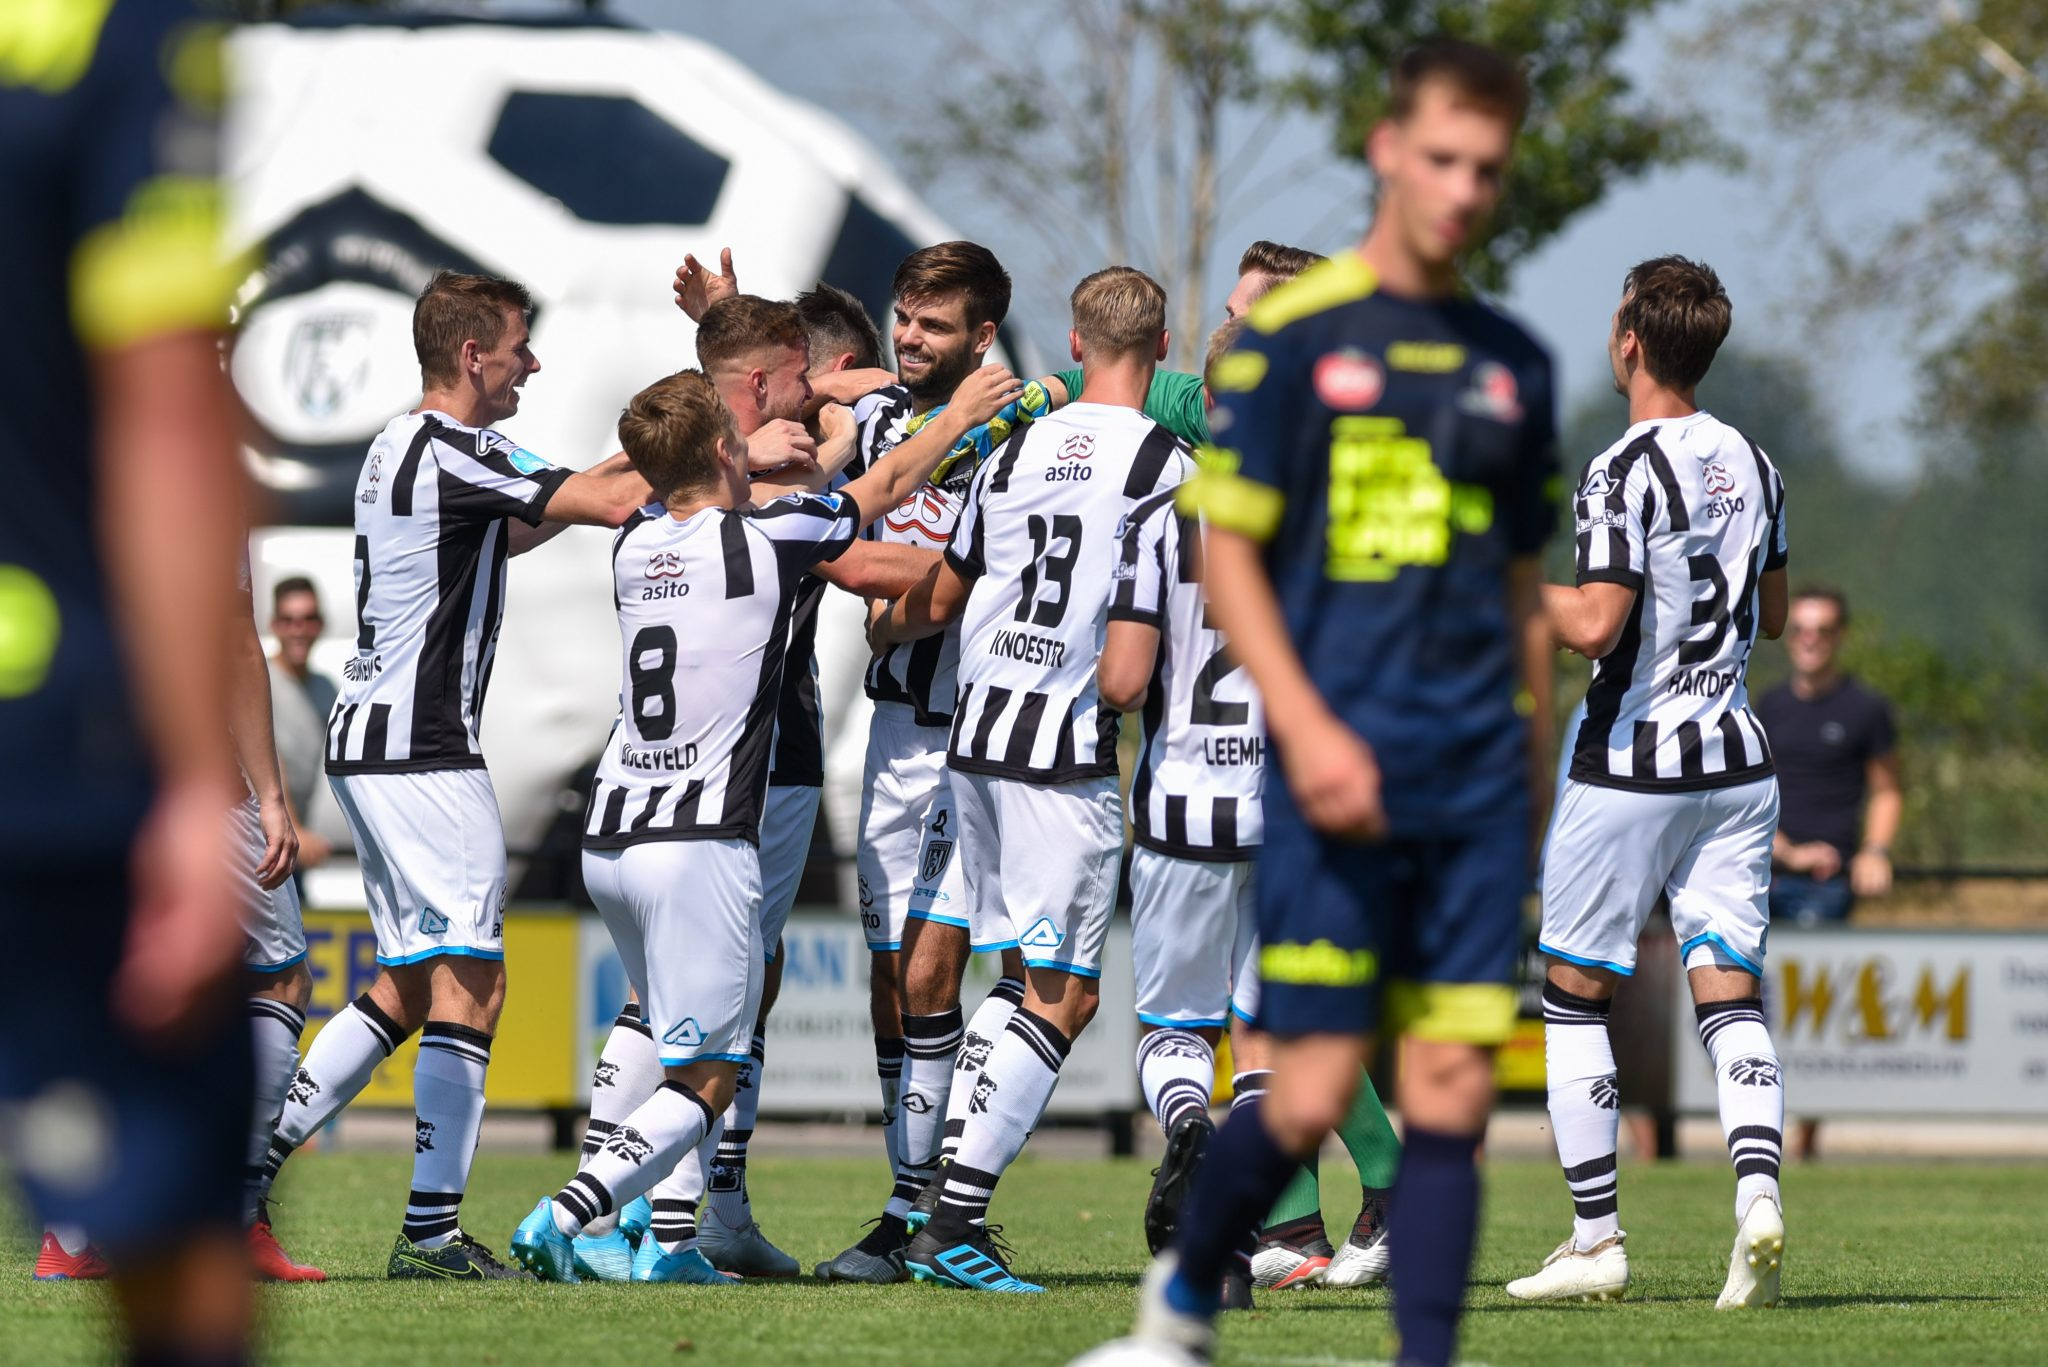 Foto's: Heracles Almelo - Helmond Sport - Heracles